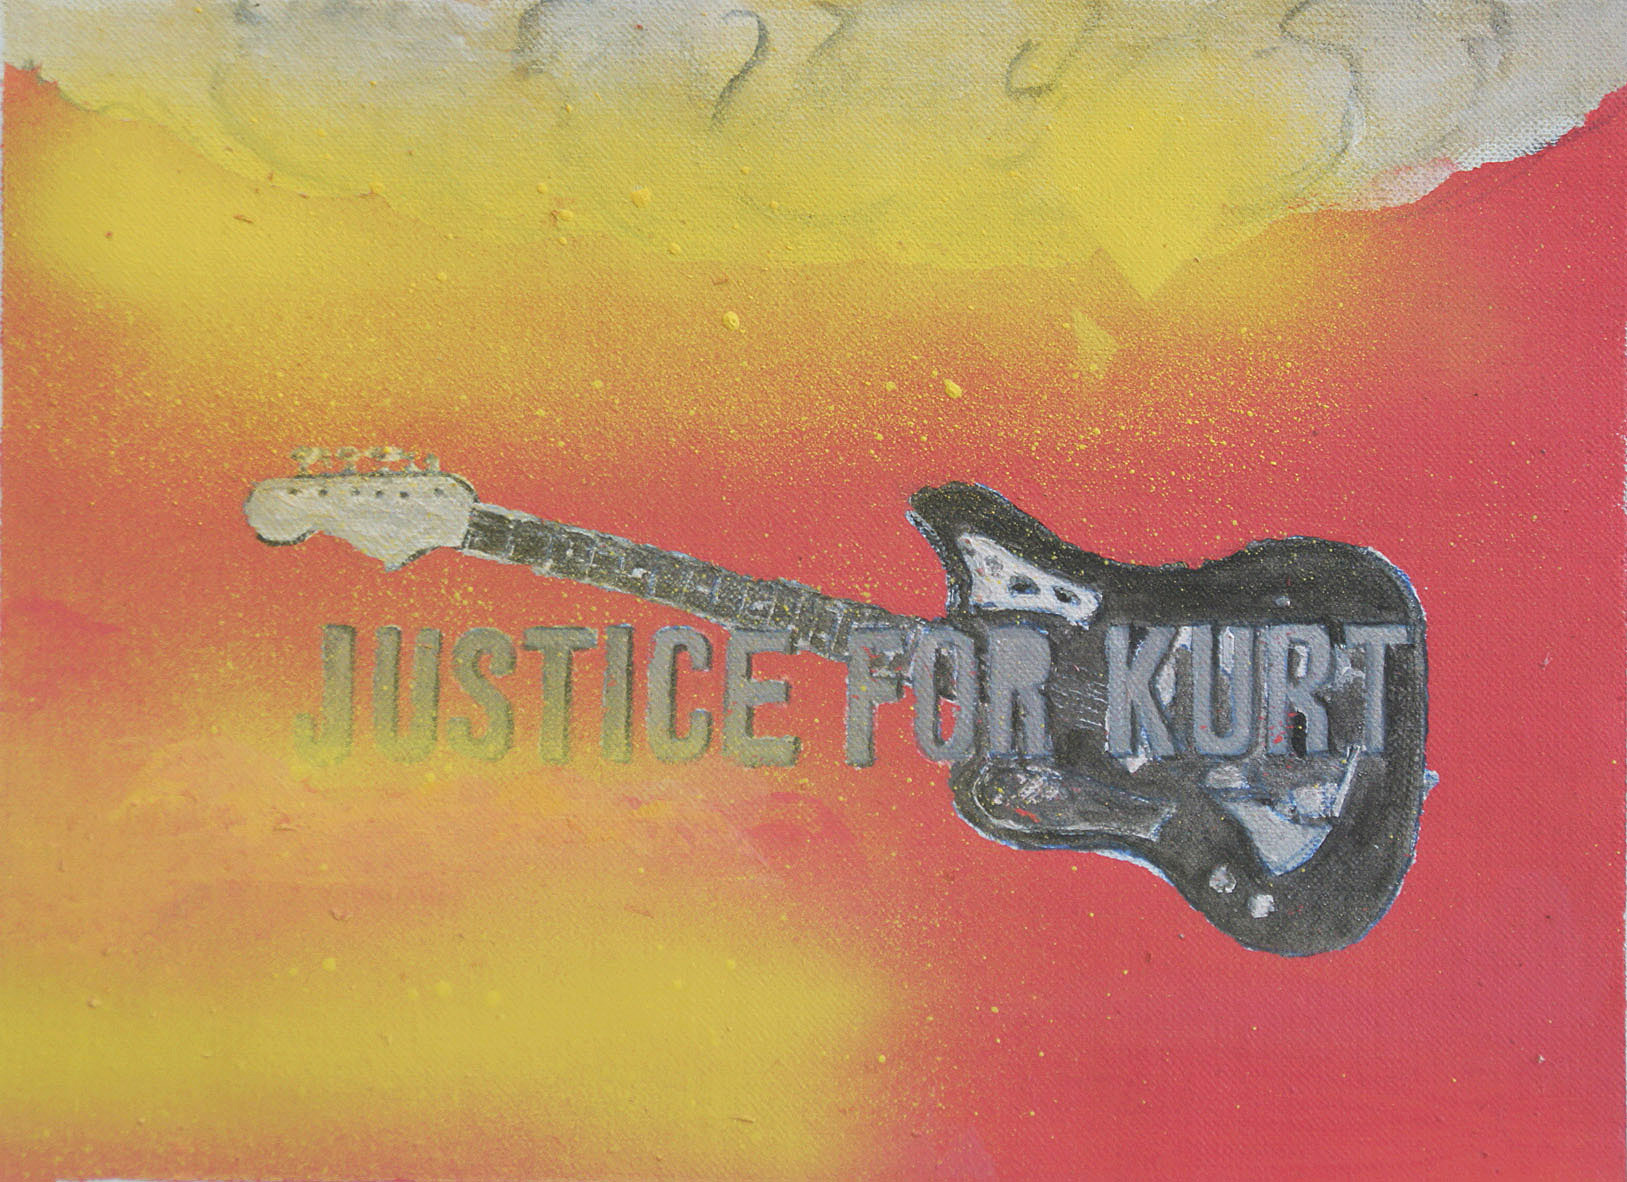 Justice for Kurt 2. 2016 acrylic on canvas 15 x 20 cm